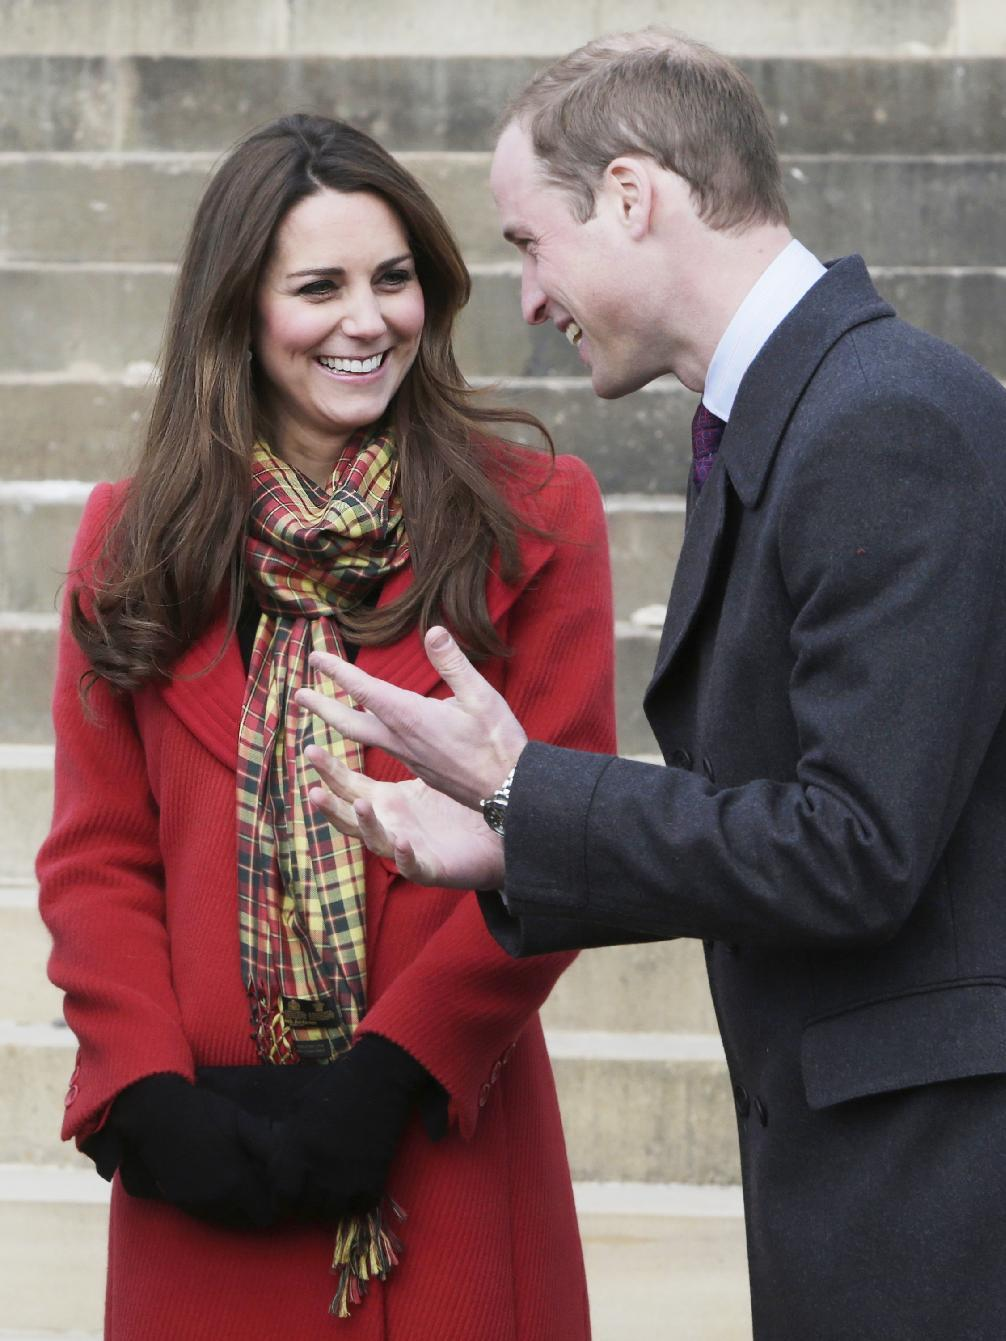 FILE - This is a Friday April 5, 2013 file photo Britain's Prince William and Kate Duchess of Cambridge, smile during a visit to Dumfries House in Dumfries, Scotland, to attend the opening of an outdoor centre. Prince William's wife Kate has been admitted to the hospital in early stages of labor it was announced on Monday July 22, 2013. (AP Photo/Danny Lawson, Pool)